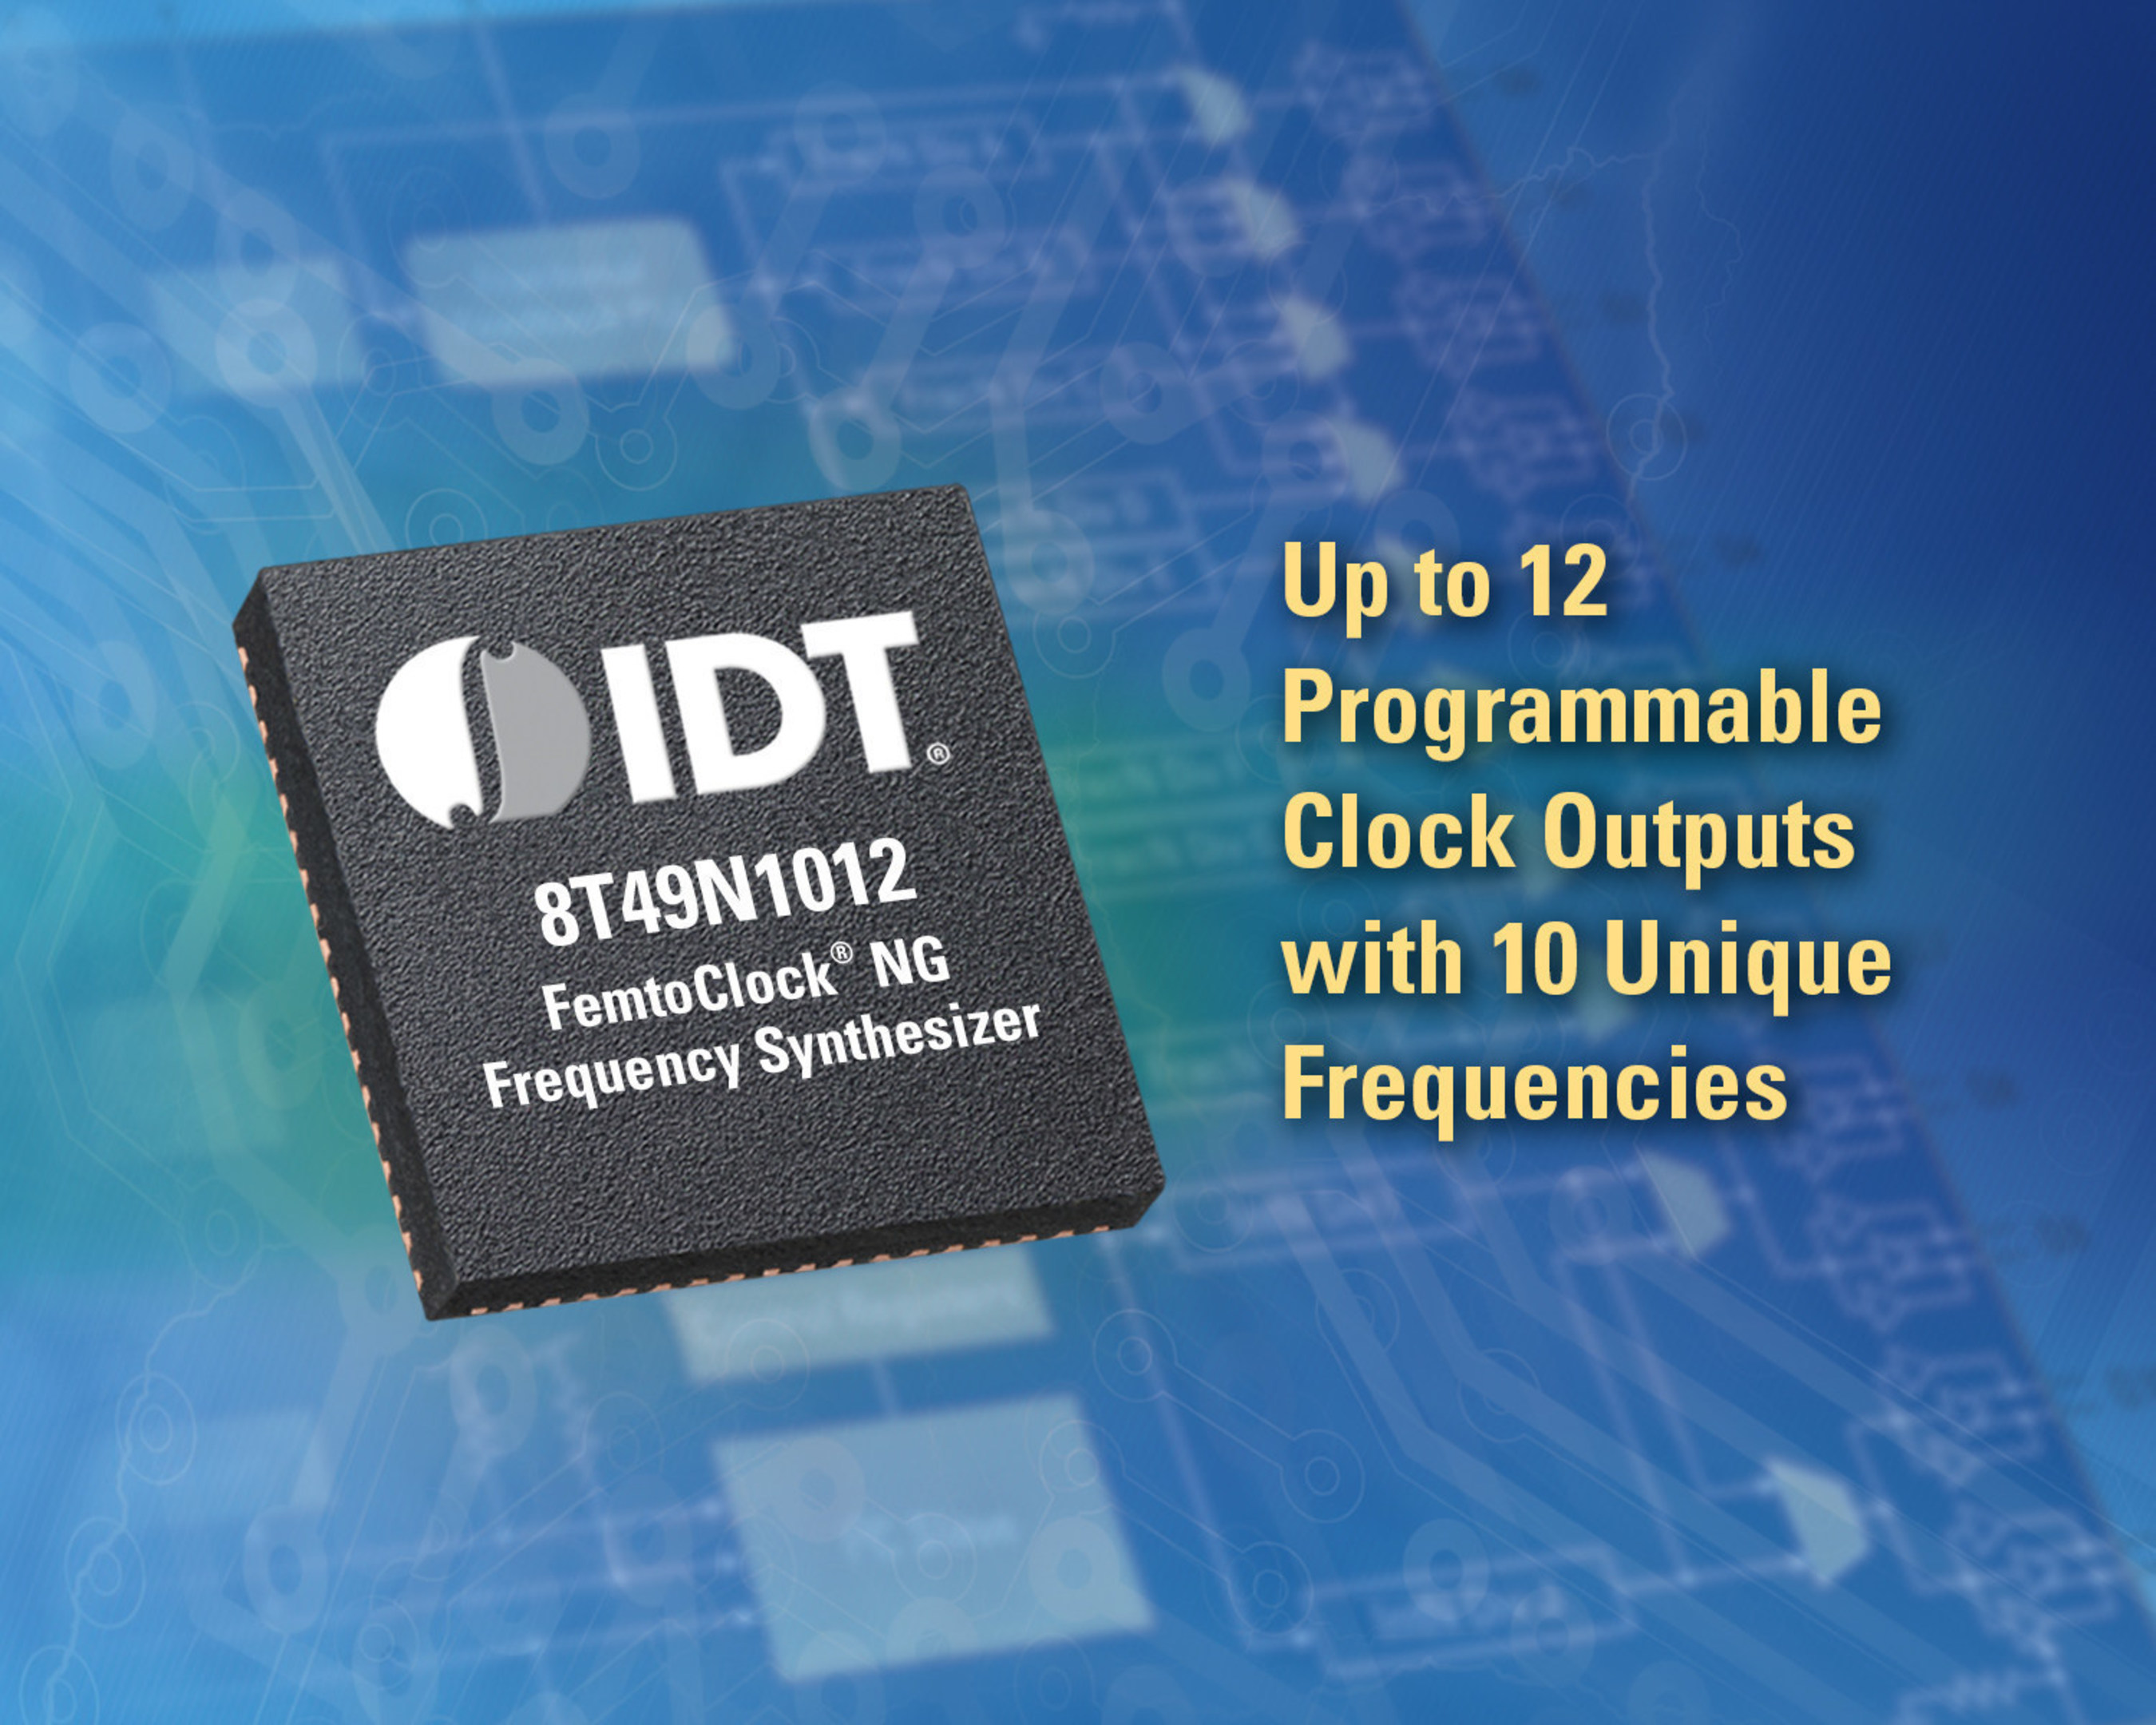 New Addition to IDT's FemtoClock Family Delivers Unparalleled Frequency Flexibility for Complex Timing Networks